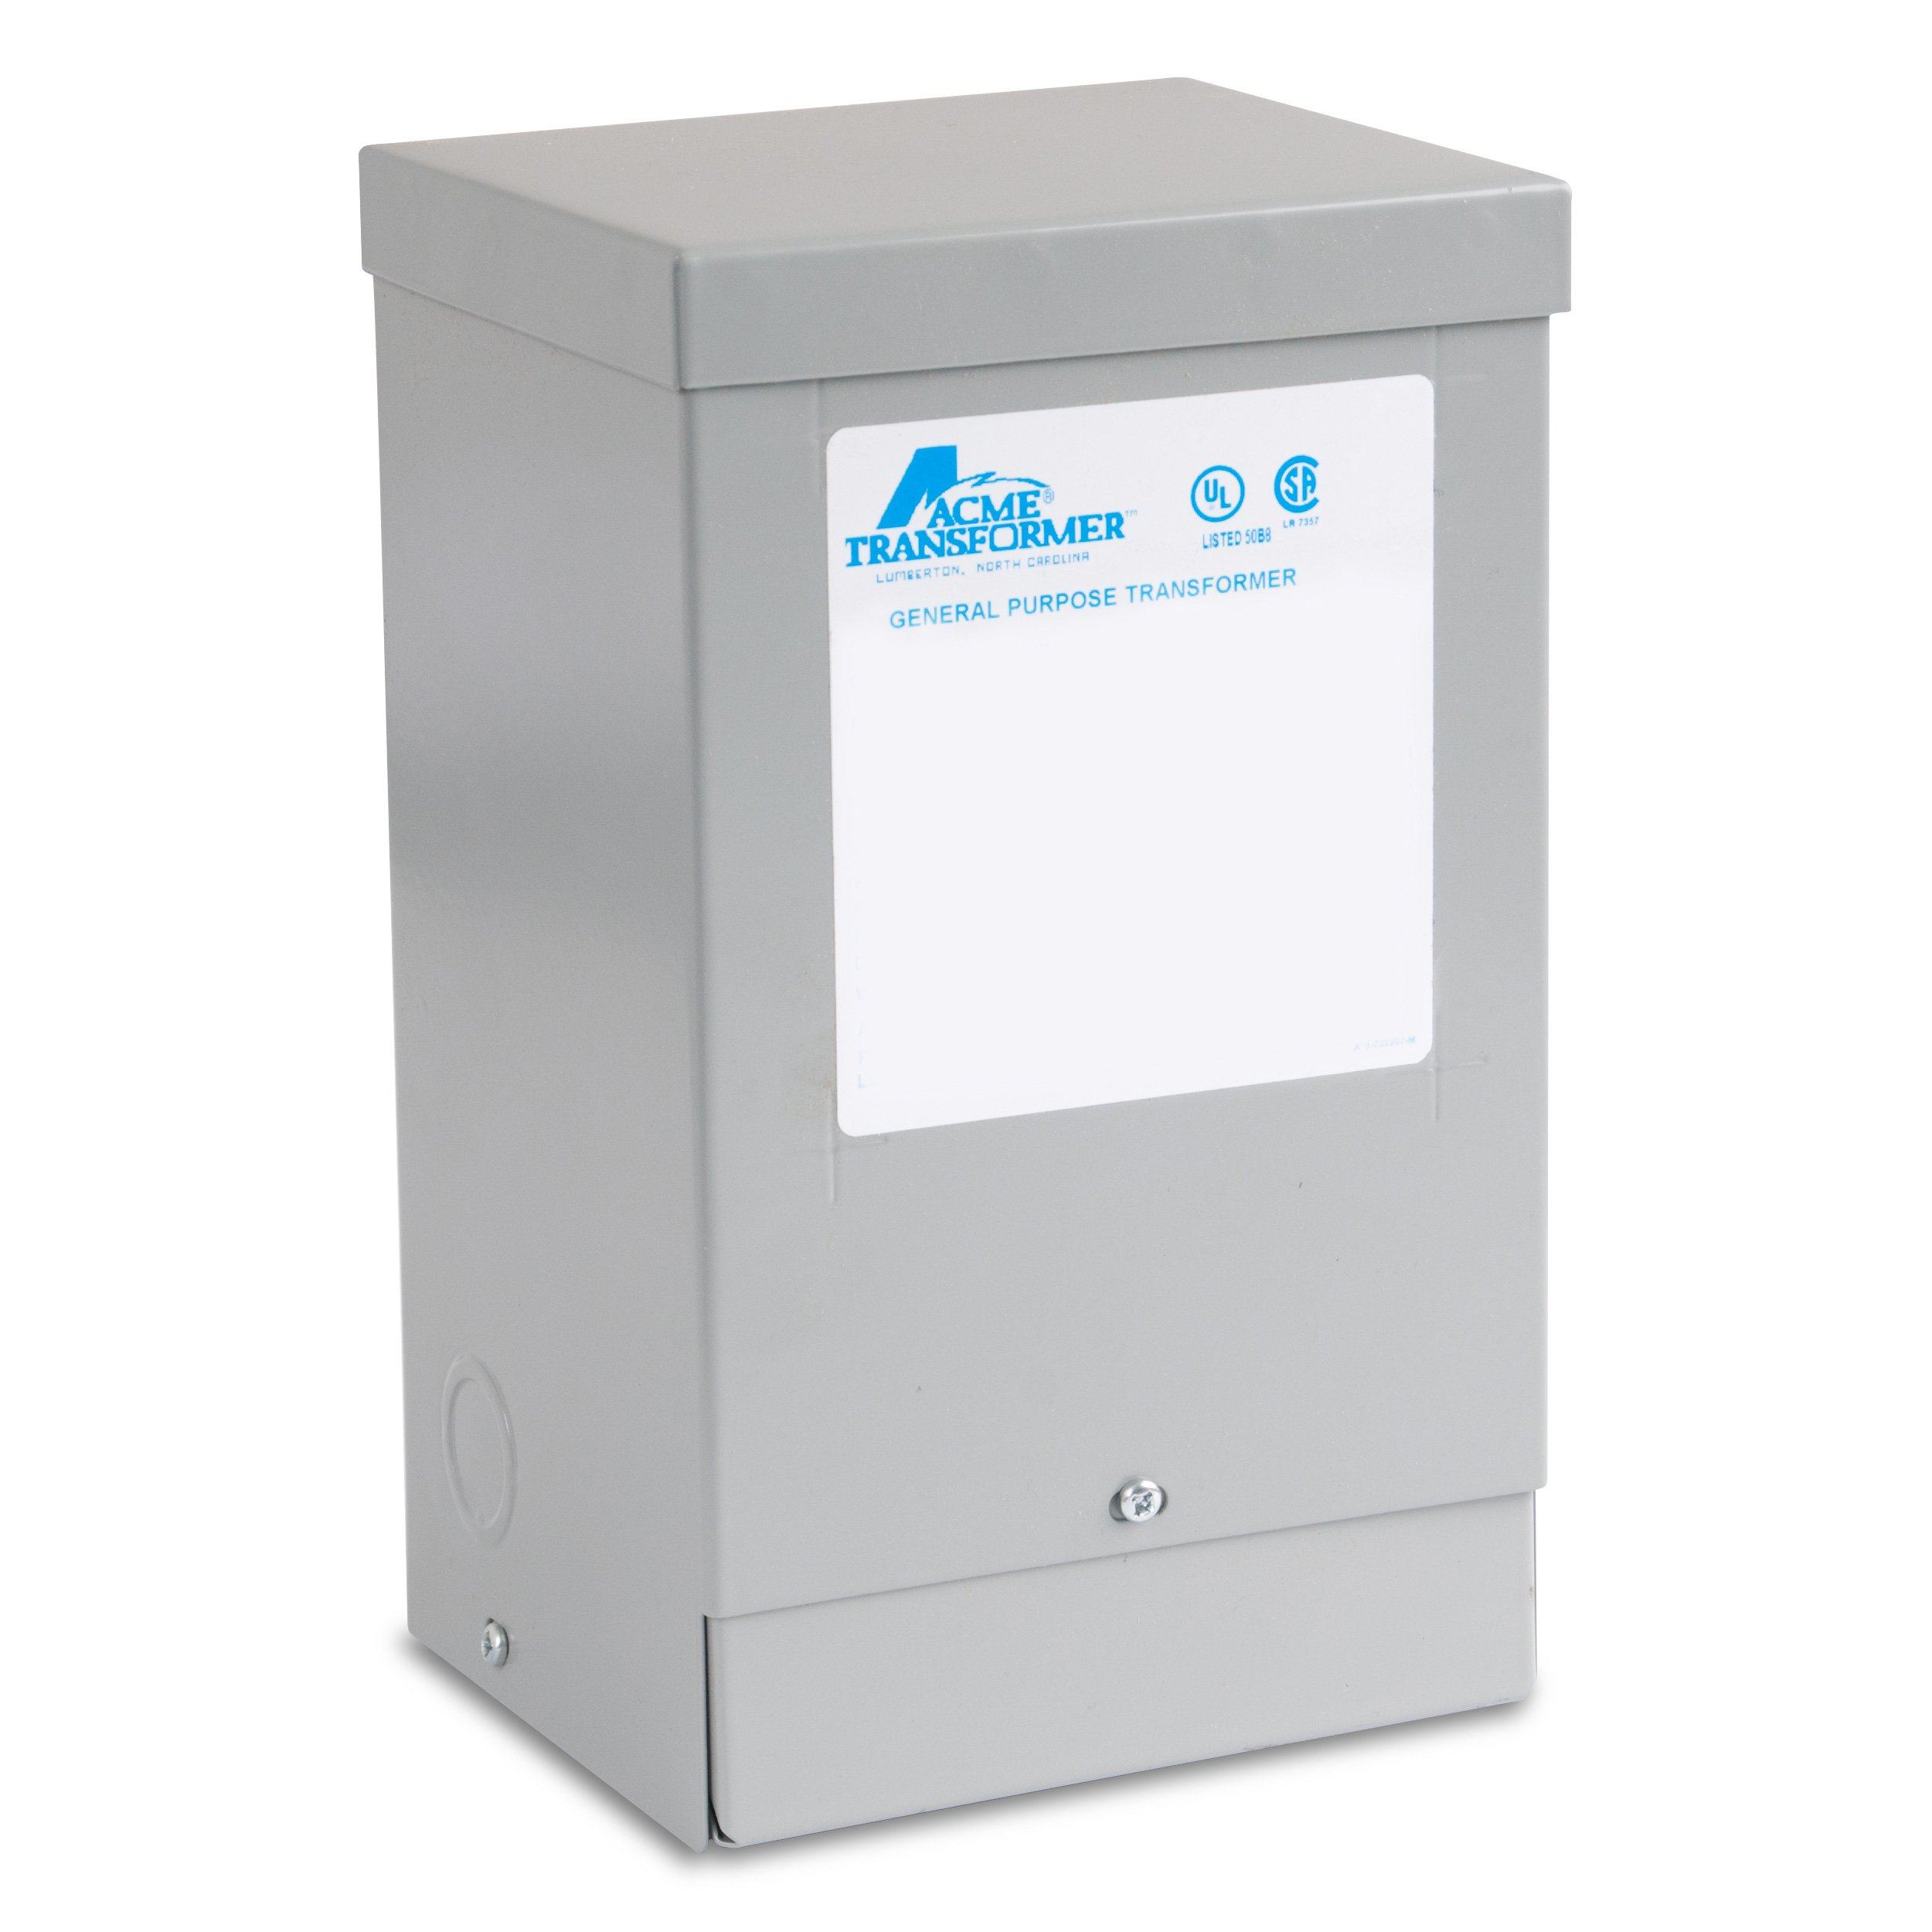 Acme Electric T111684 Buck-Boost Transformer, 1 Phase, 60 Hz, 1.5 kVA, 120 x 240V Input, 12/24V Output, Steel by Acme Electric (Image #1)